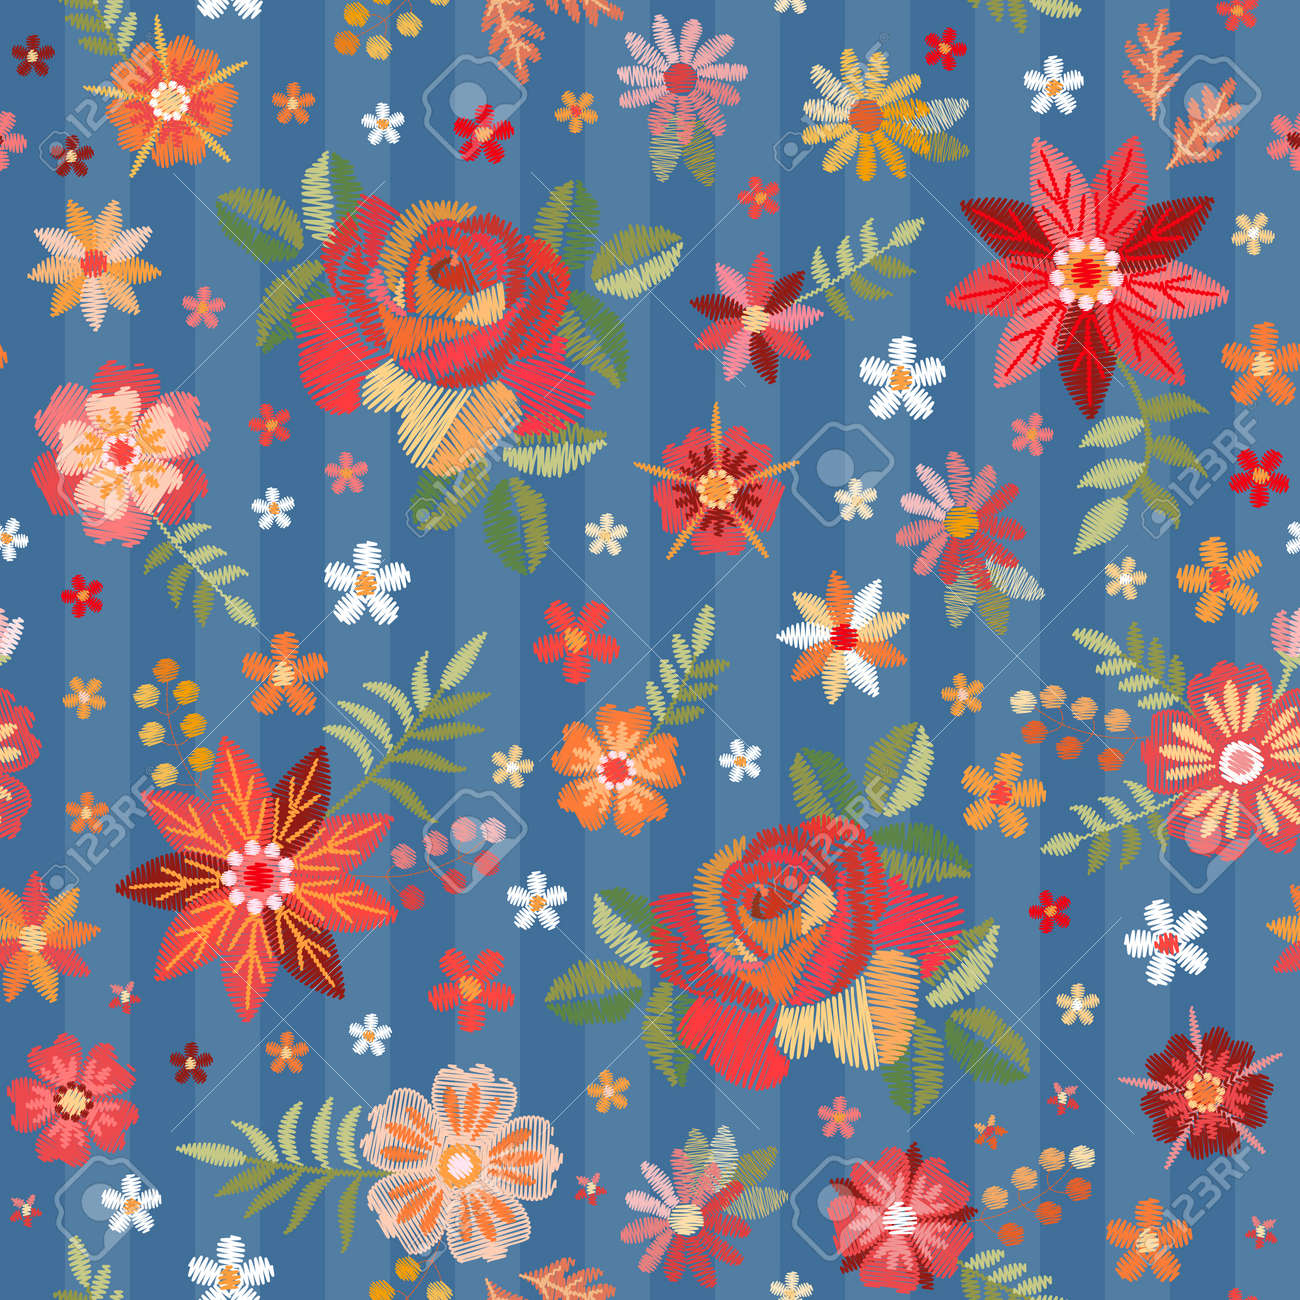 Embroidery seamless pattern with red roses and wild flowers on blue background - 173408004